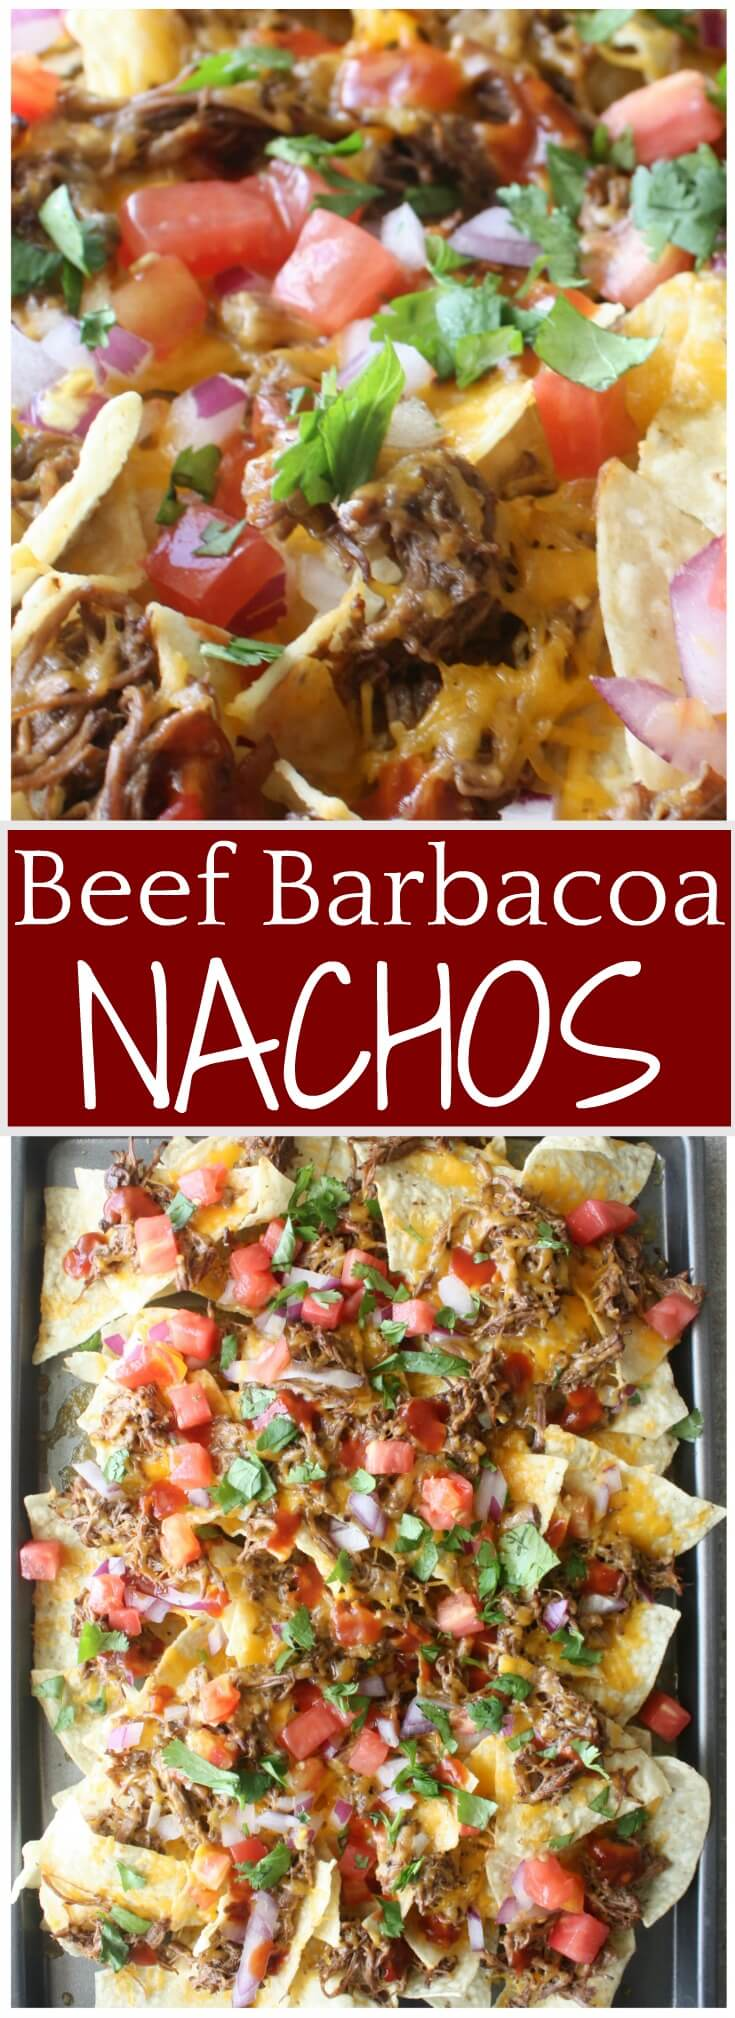 Barbacoa Beef Nachos recipe. Toasted chips with layers of slow cooker beef barbacoa, melted cheese and loaded with flavorful toppings. Gather around this tray of Barbacoa Beef Nachos for a crowd pleasing appetizer or meal